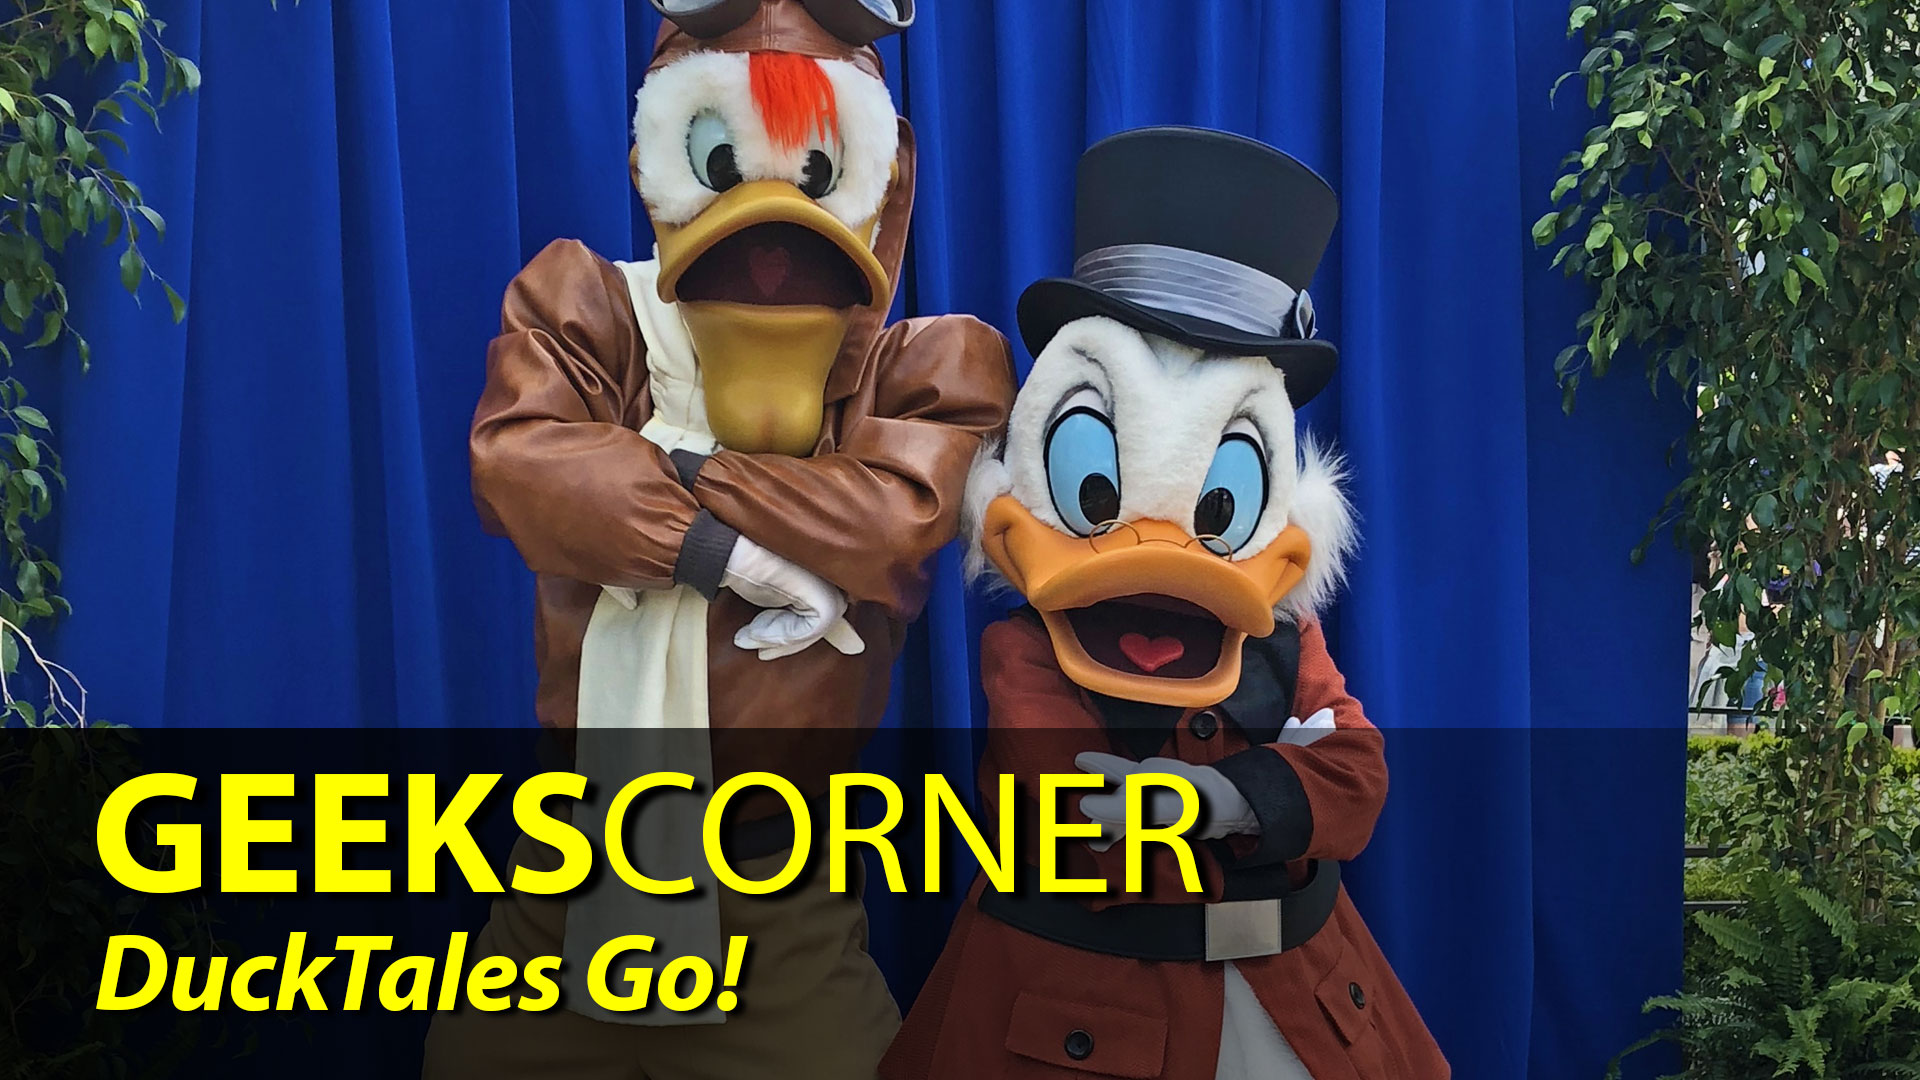 DuckTales Go! - GEEKS CORNER - Episode 833